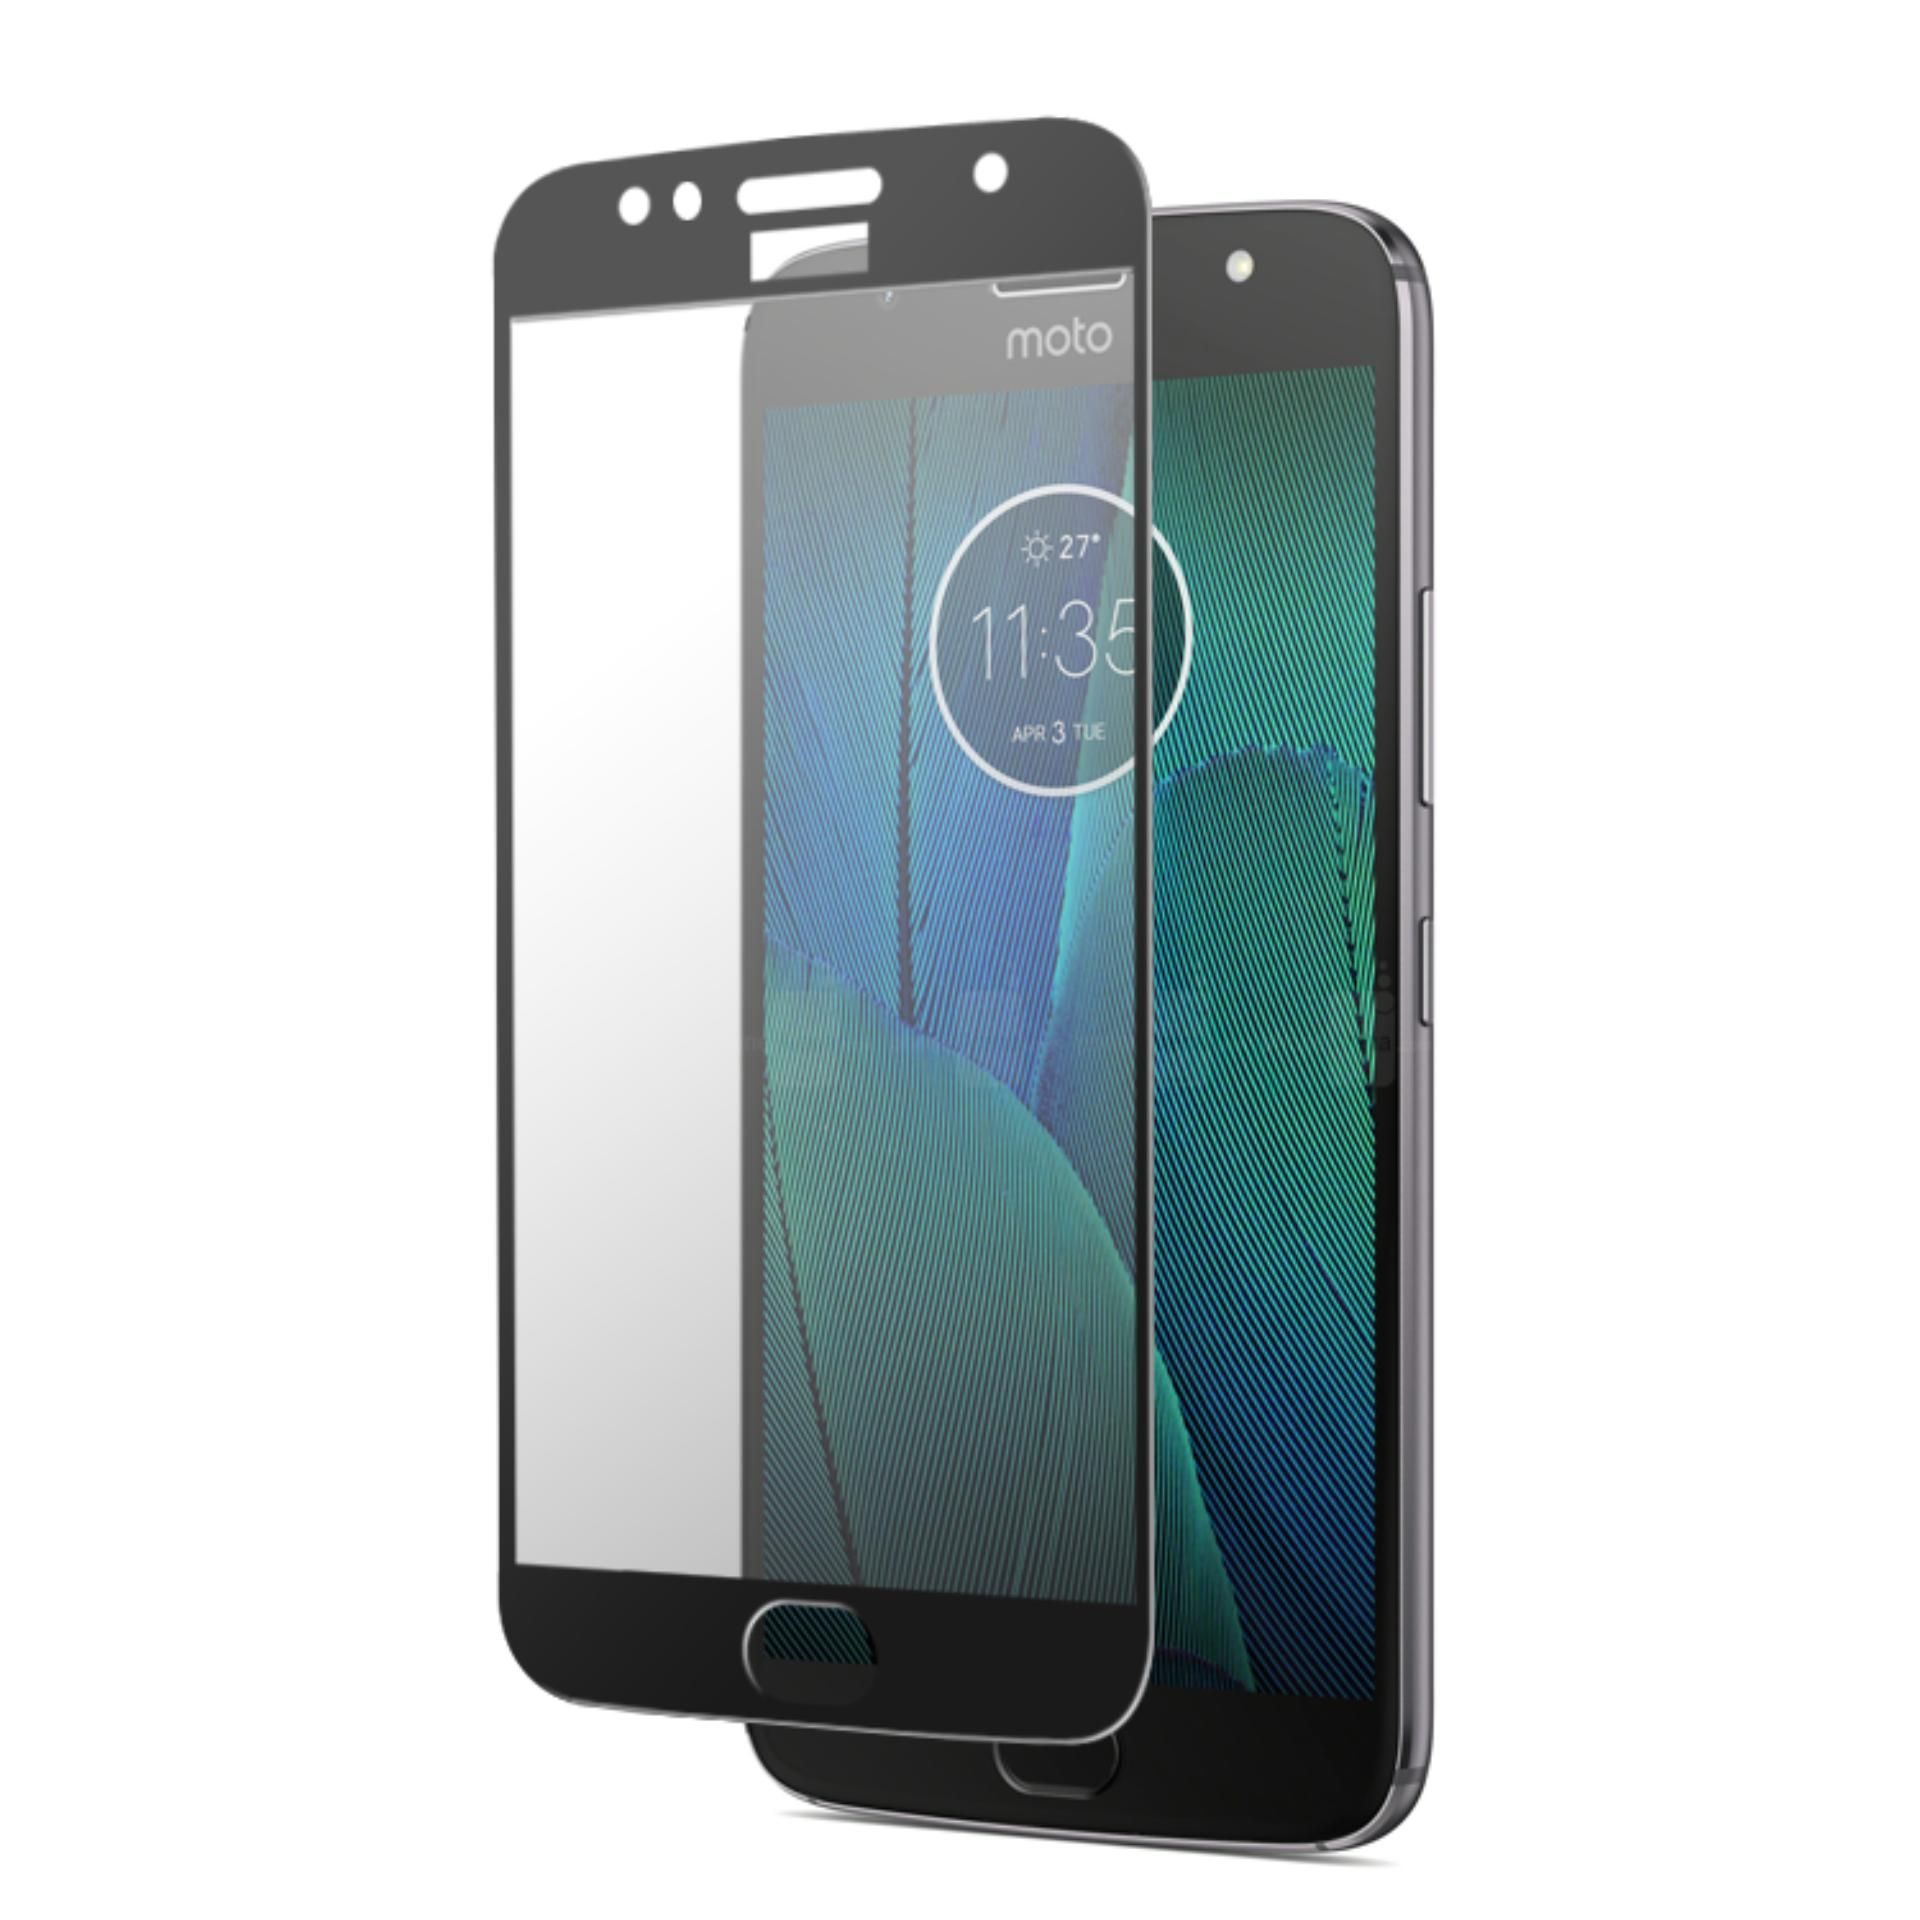 Harga Hmc Motorola Moto G5S Plus 2017 Xt1805 Tempered Glass 2 5D Full Screen Lis Hitam